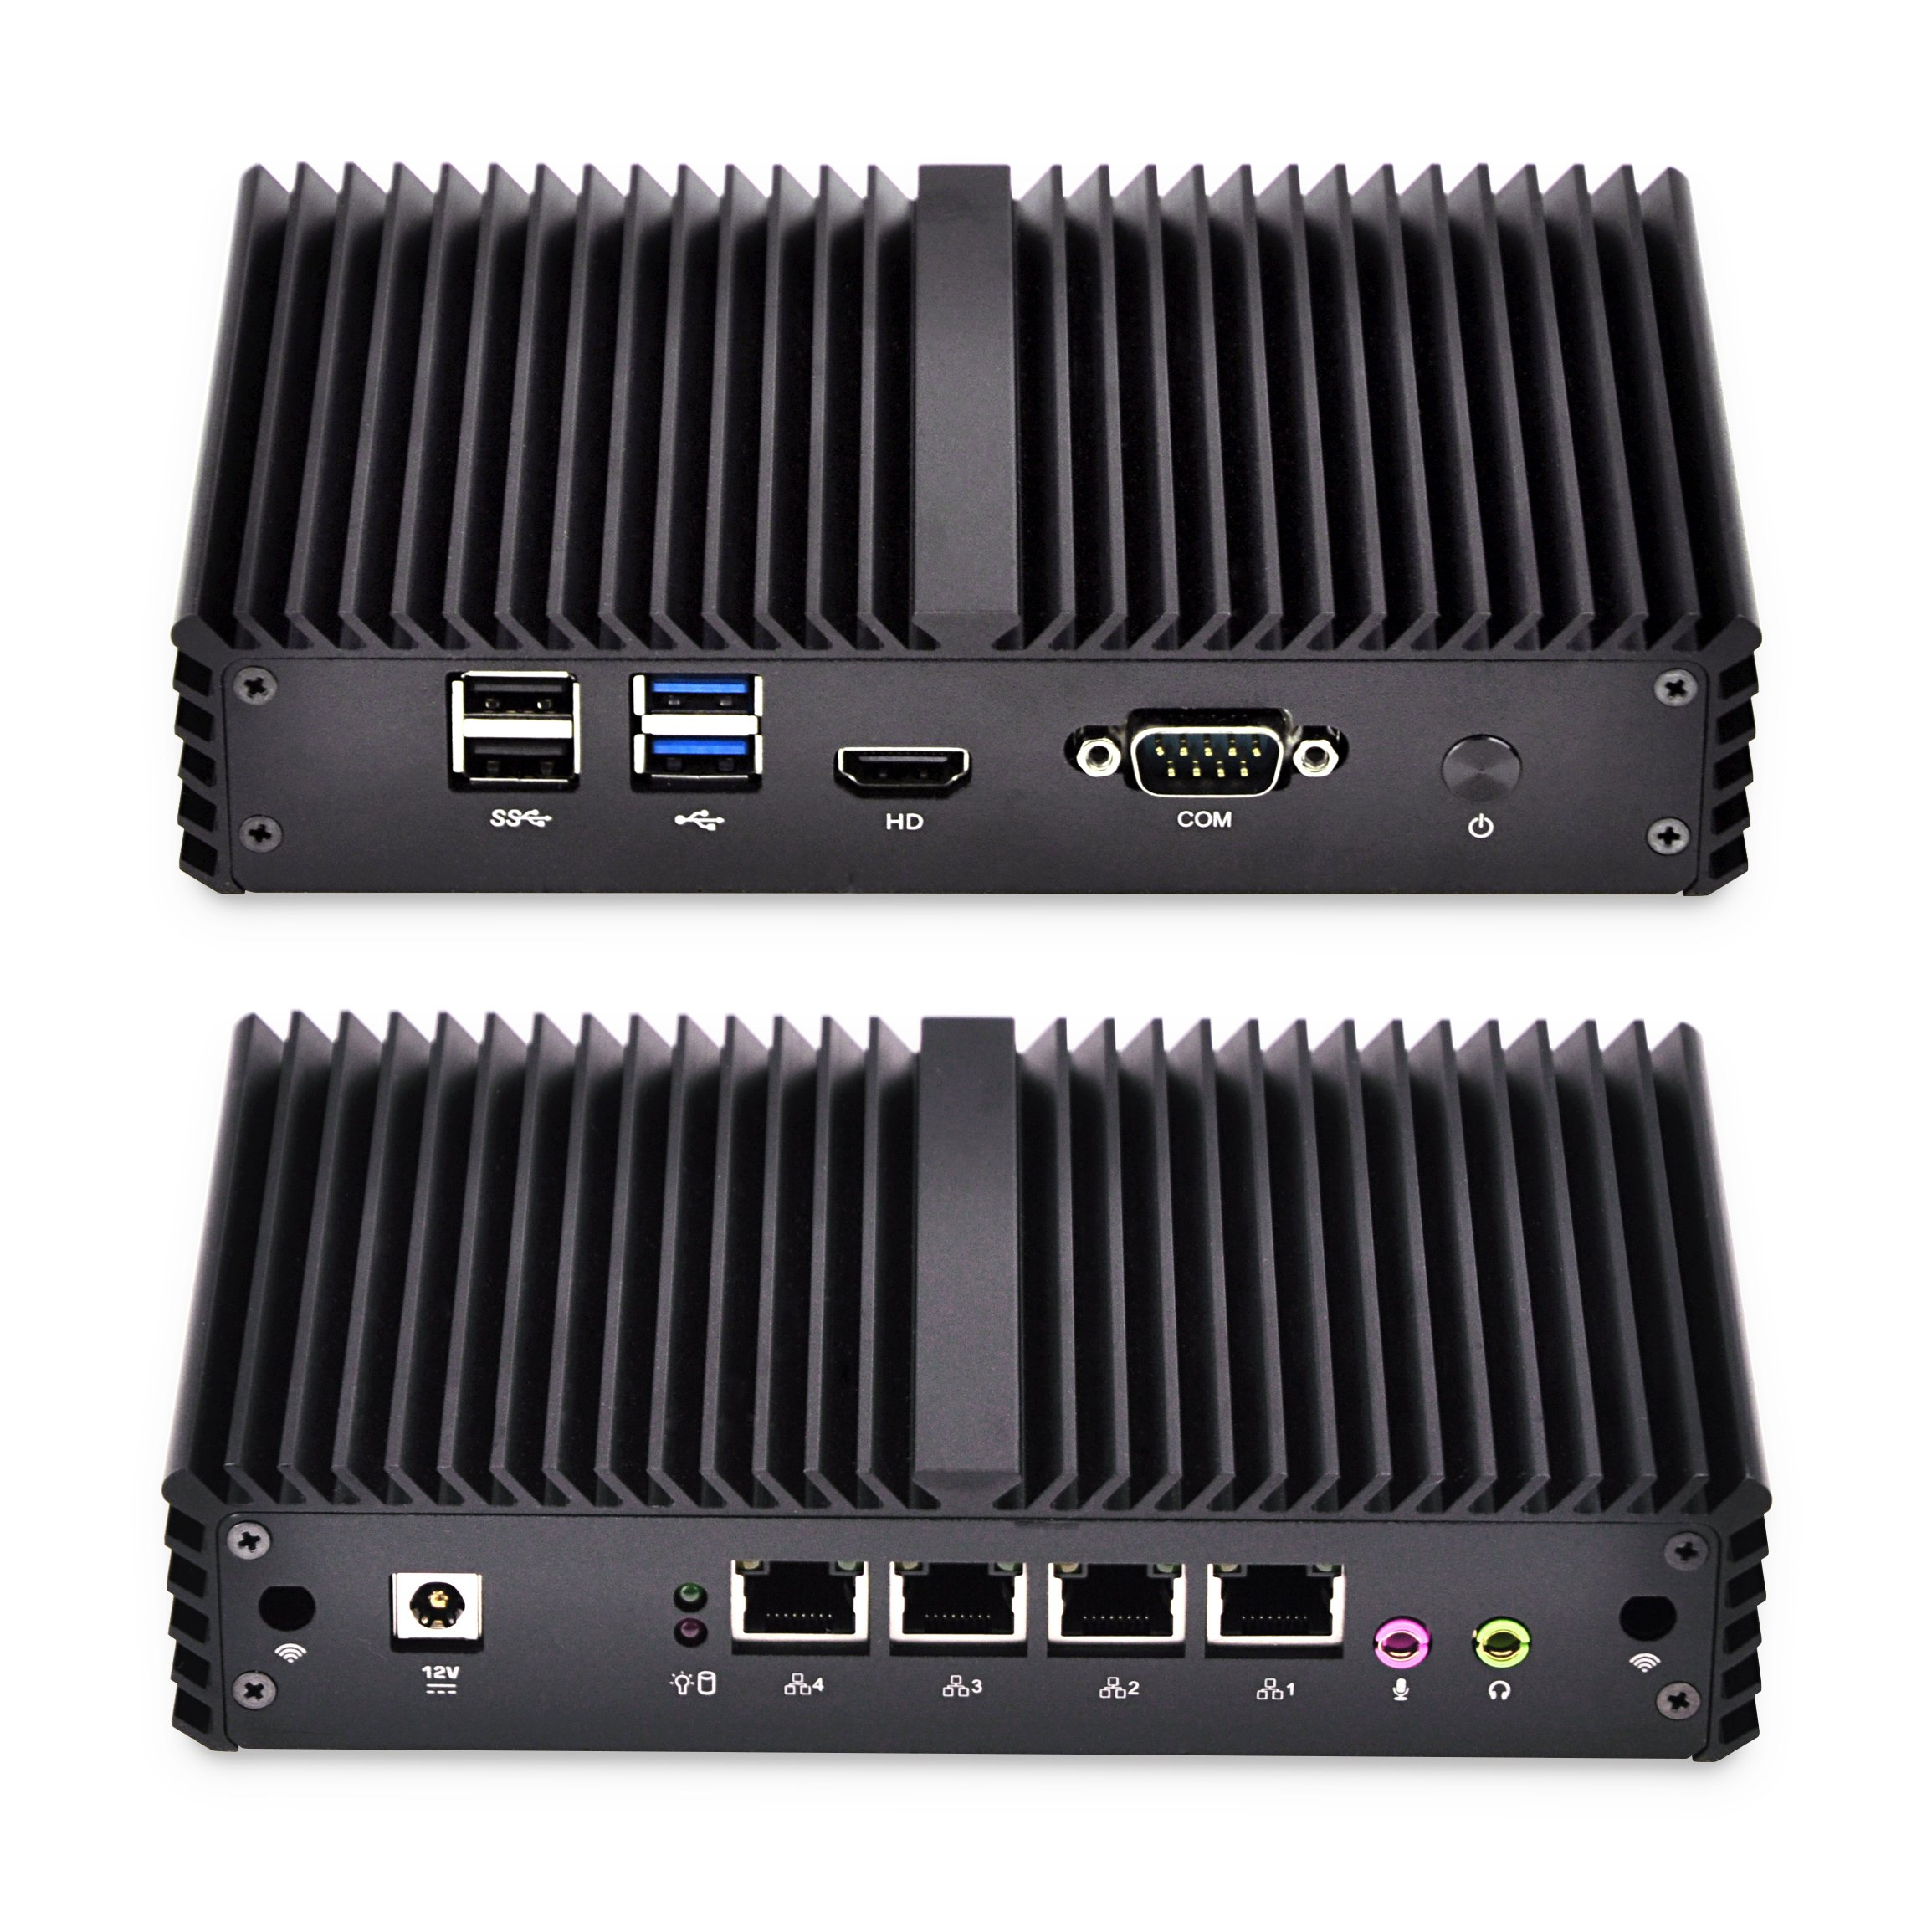 Pfsense Appliance Qotom-Q335G4 5Th Generation Intel Core I3-5005U, 4Gb Ddr3 Ram 16Gb Ssd, Fanless Aluminium Alloy,4 Lan,Dc 12V,Windows Os Linux Pfsense by Qotom (Image #1)